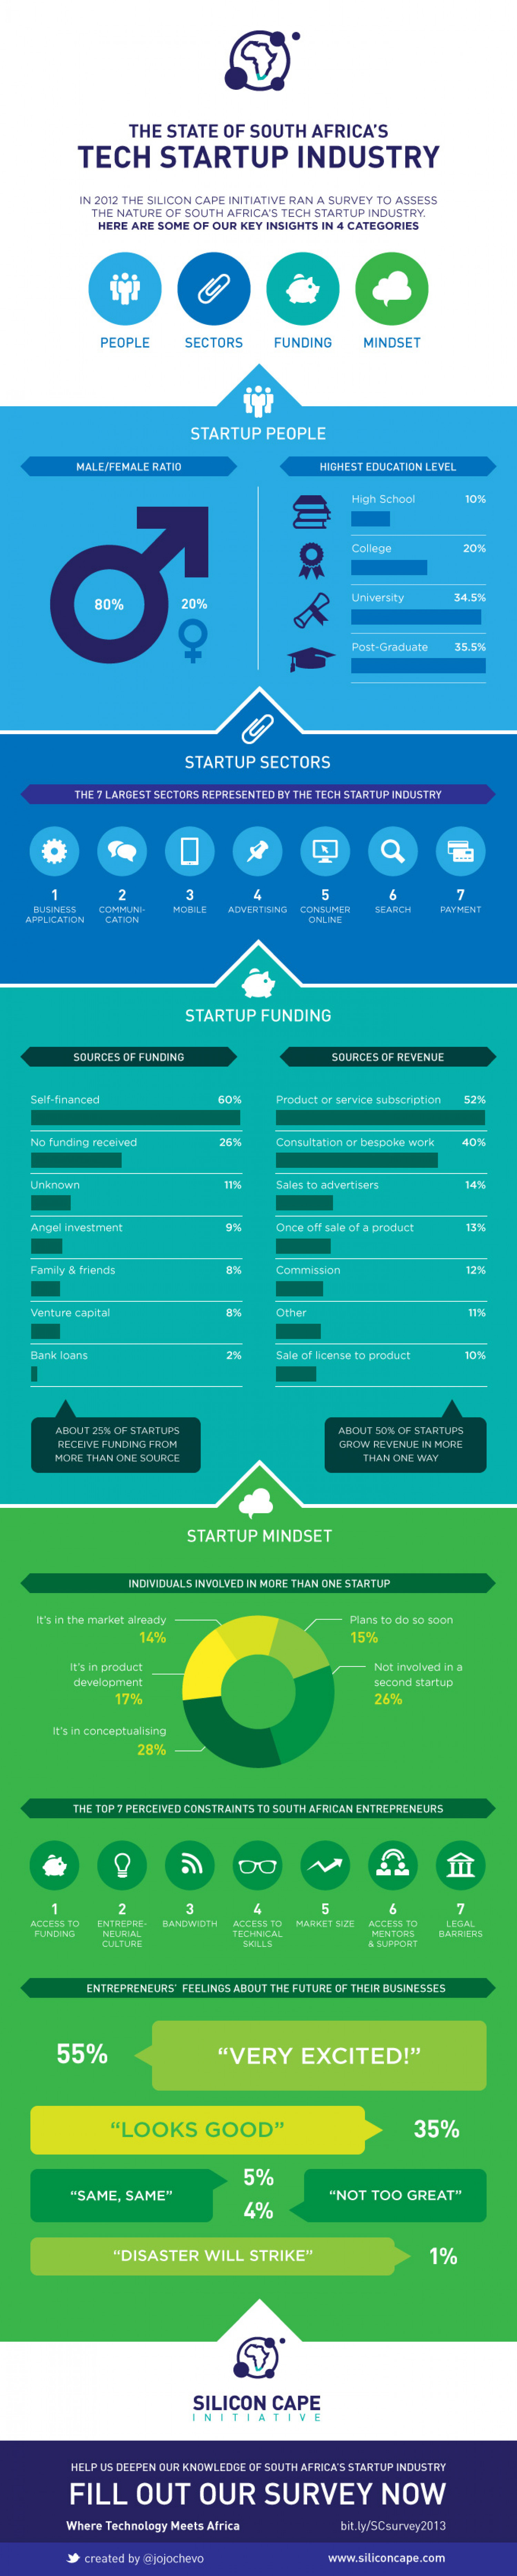 Silicon Cape Study: The state of SA's tech startup industry Infographic